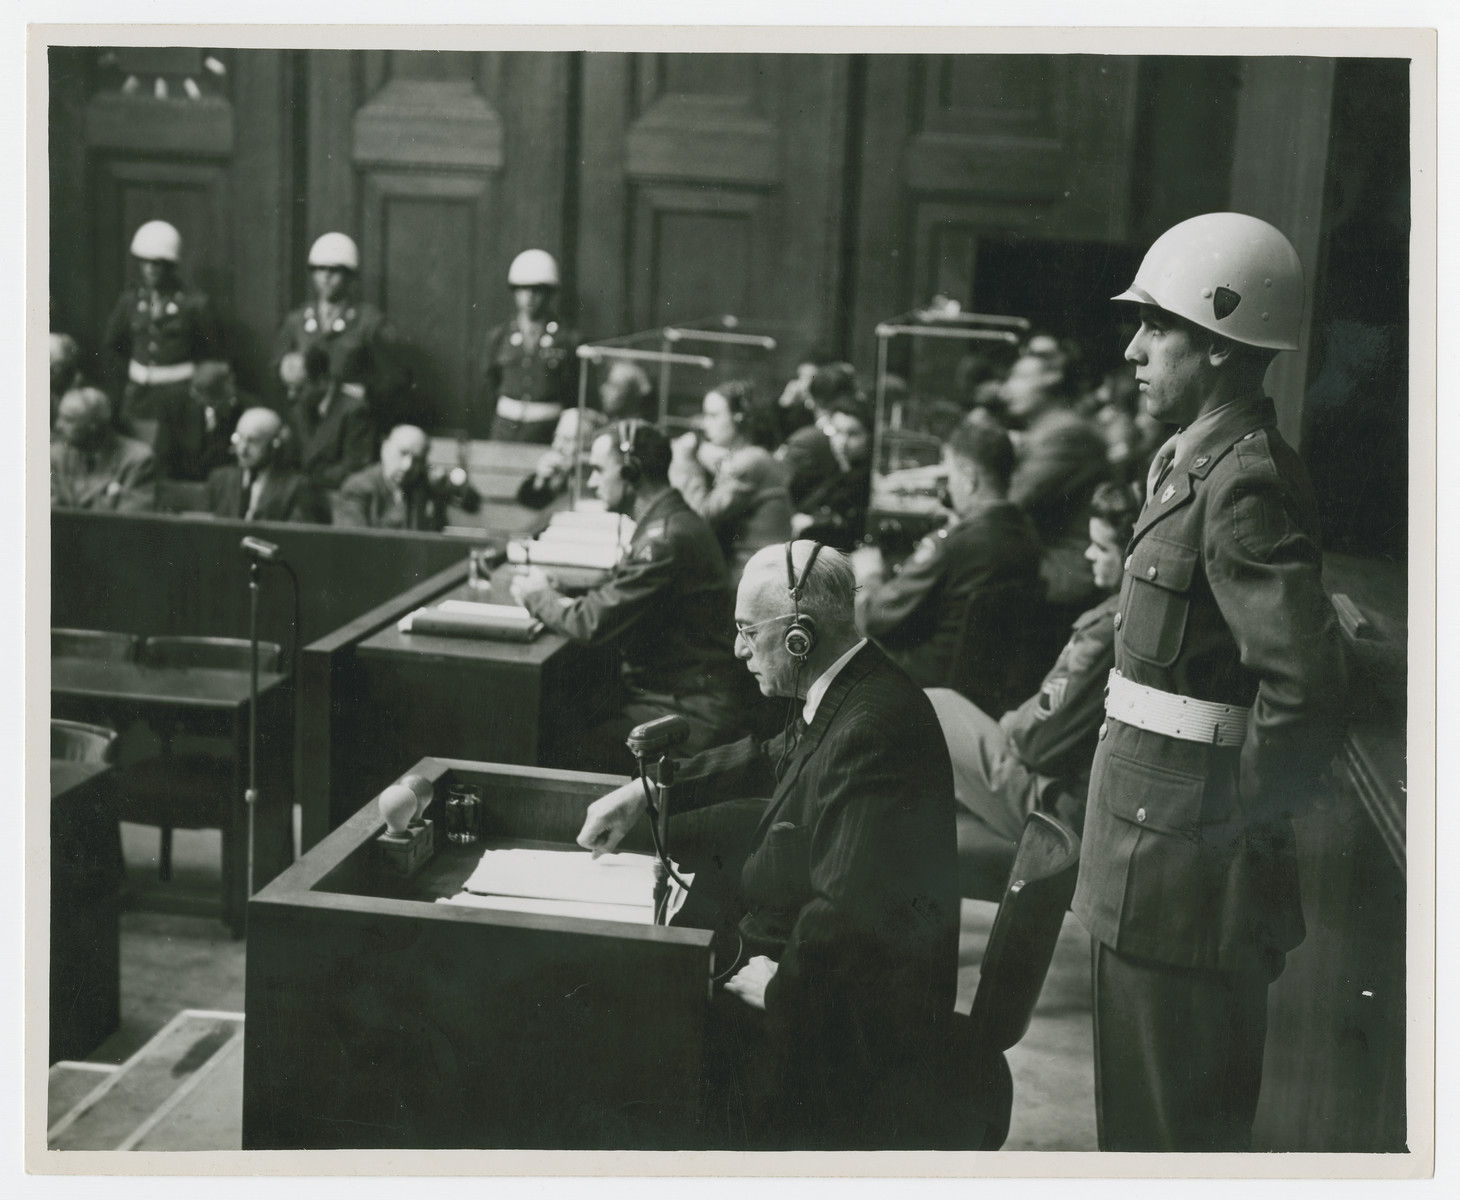 Konstantin von Neurath reads from a document during his trial for war crimes at Nuremberg.